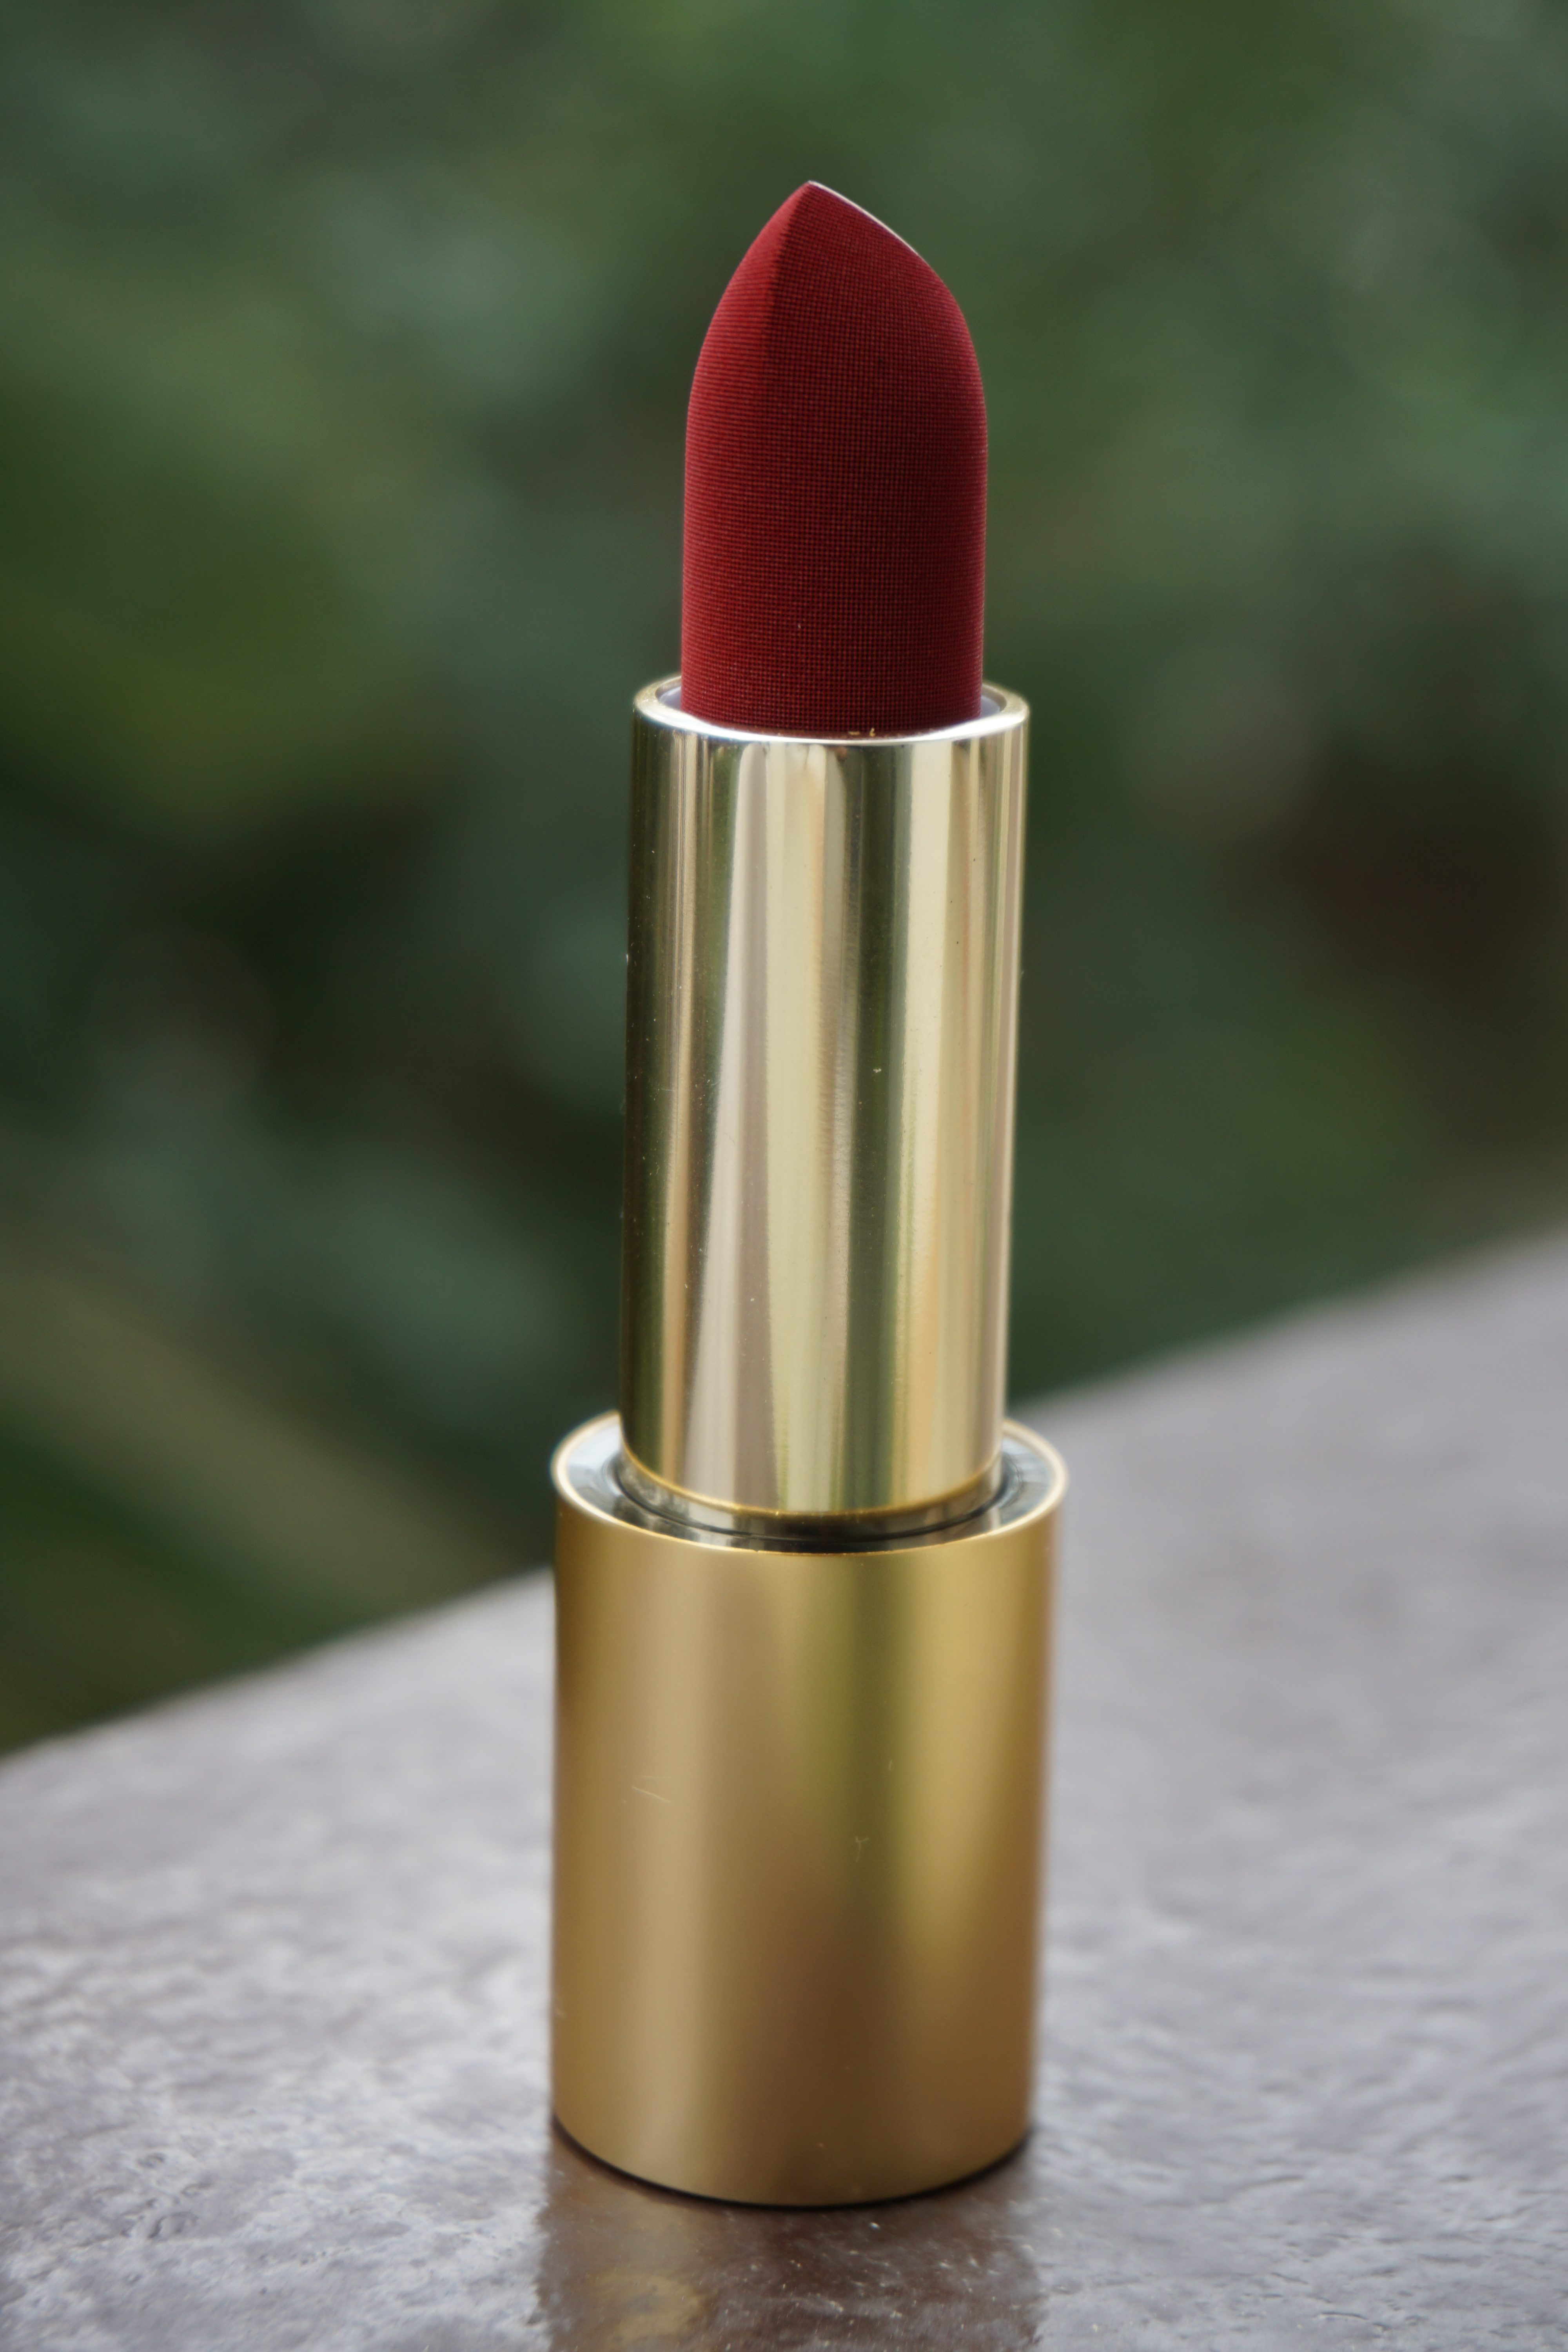 Velvet Jazz Lisa Eldridge Bullet